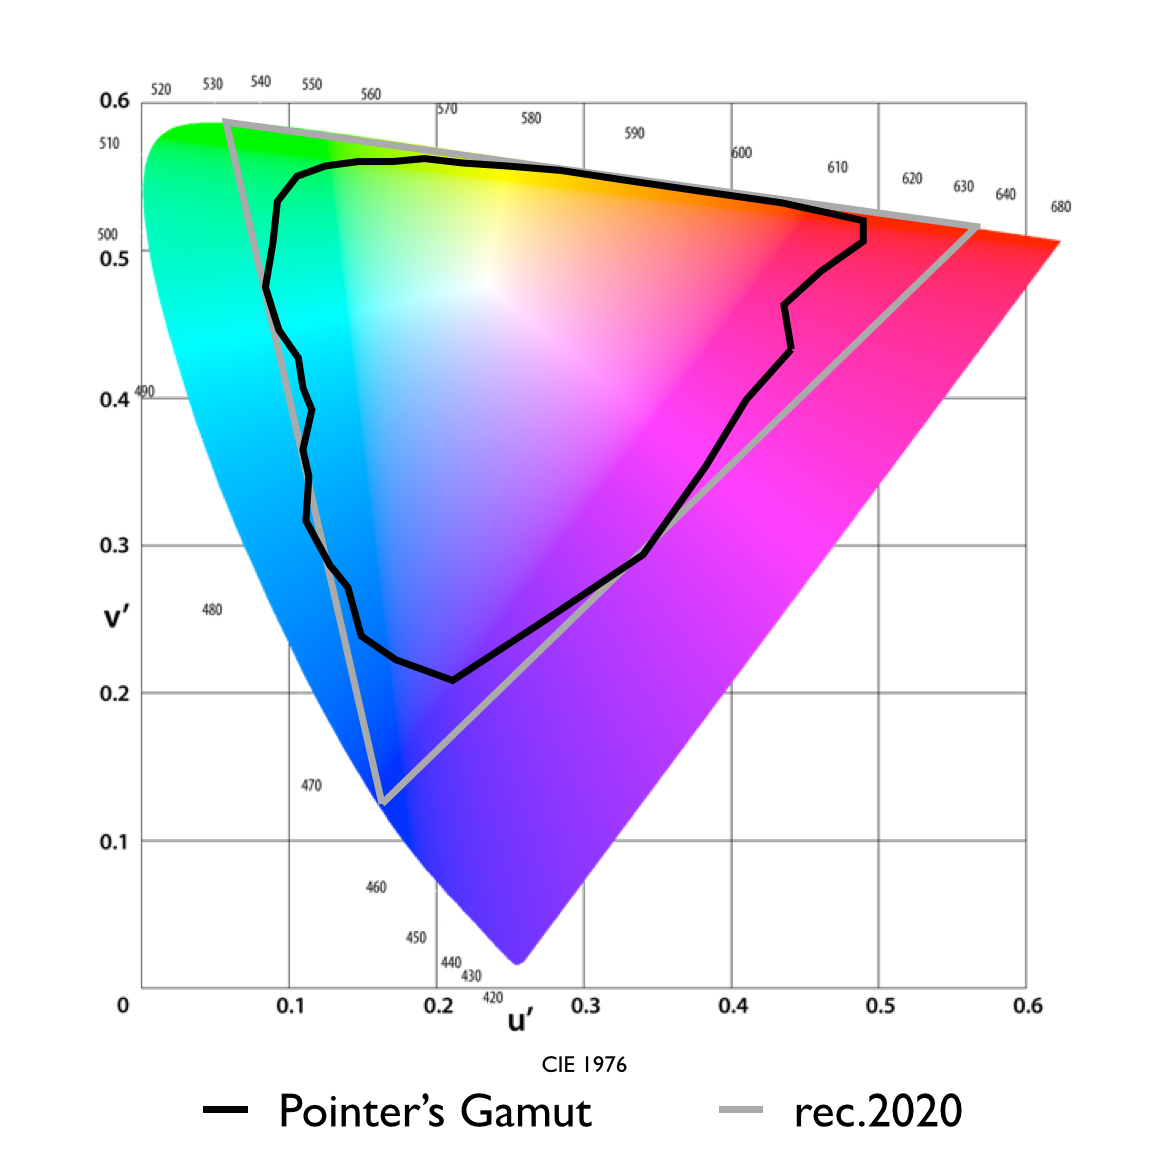 rec.2020 needs a very deep green to cover 99.9% of Pointer's Gamut